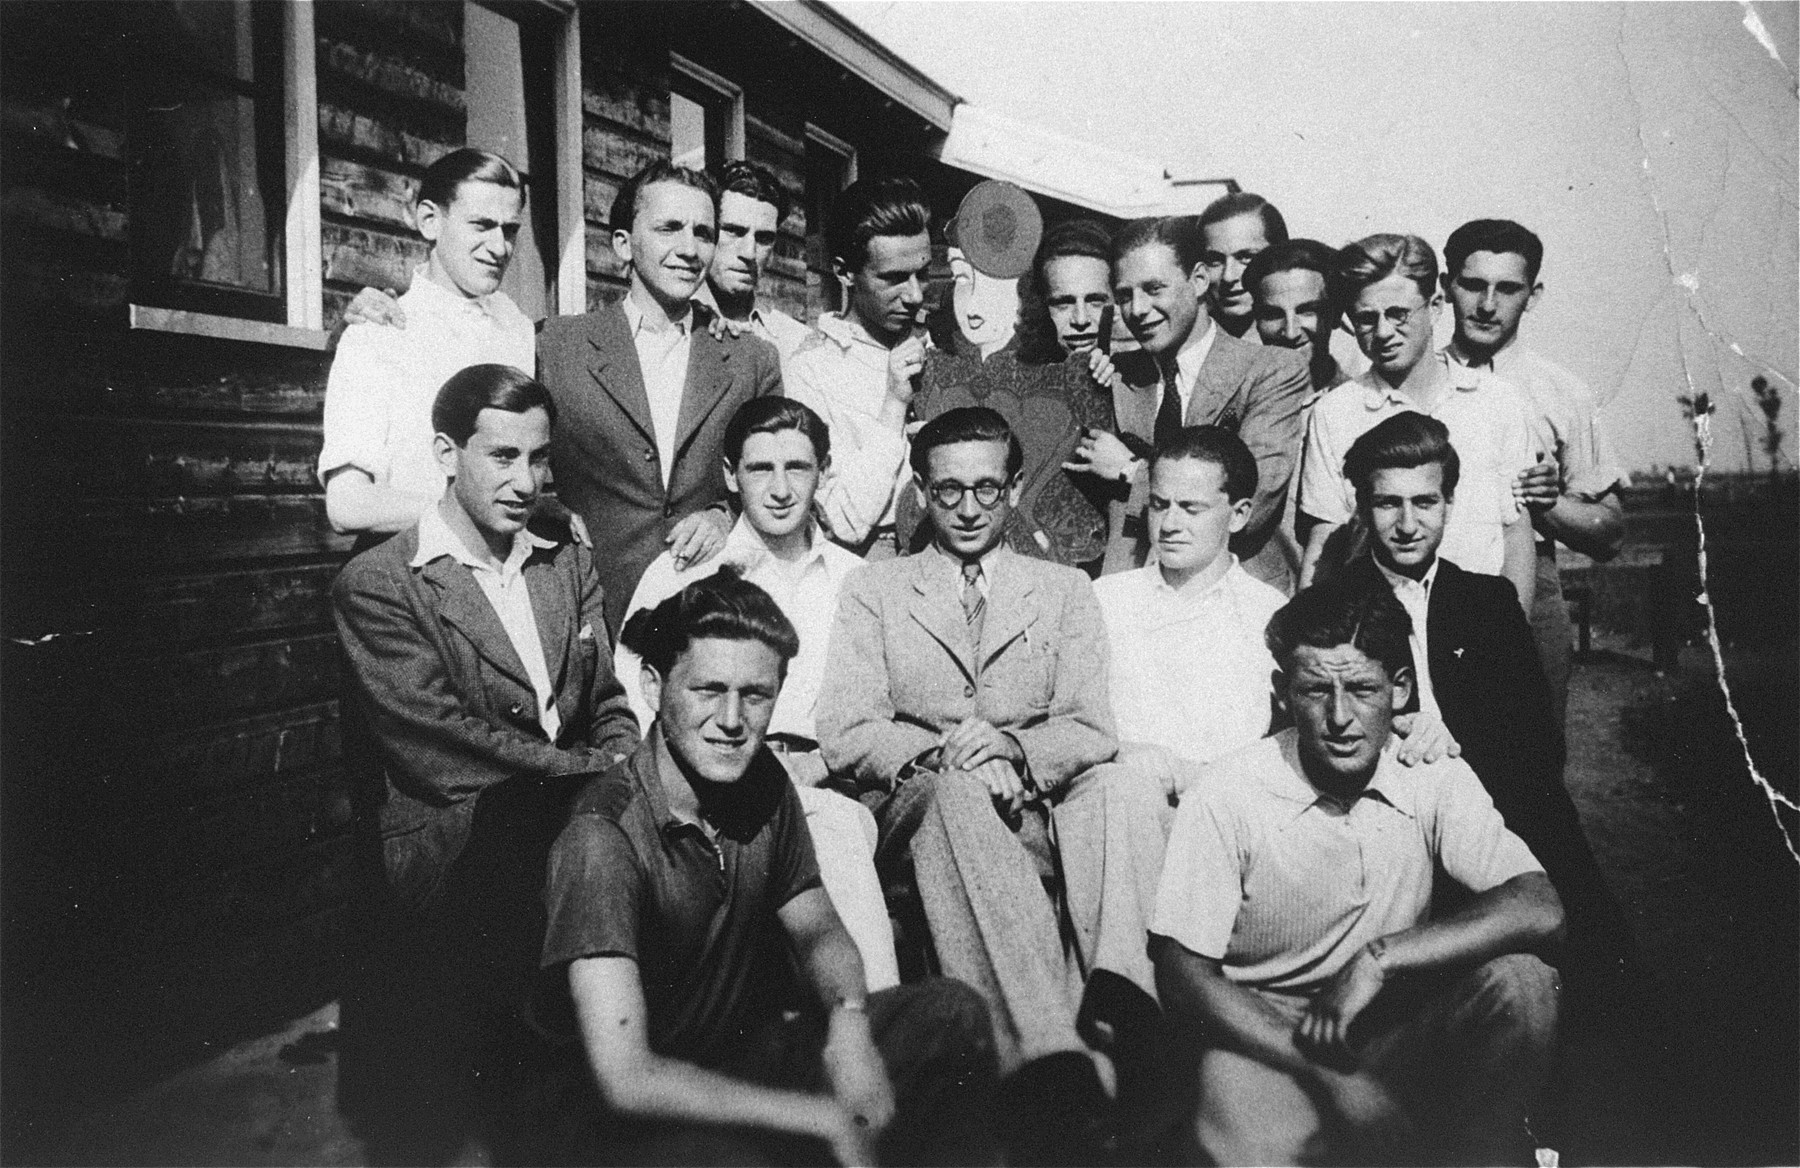 Group portrait of German Jews living in barracks no.6 in the Westerbork camp during the period when it was still a camp for illegal Jewish refugees in Holland.    Among those pictured are (front row, left to right):  Werner Berger and Fritz Straus; (middle row, left to right):  Werner Katz, Guenter Frage, Rolf Levy, Kurt Hirschfeld, and Erwin Panthauer; (top row, left to right) Bernt Stein, Abramowitz, unknown, unknown, Fritz Schwarz, Manfred Schwartz, Werner Roman, Bernard Koebner, Siebert Fischer, unknown, Gert Zilenzinger, Siegbert Fisher, Guenther Rotchen.